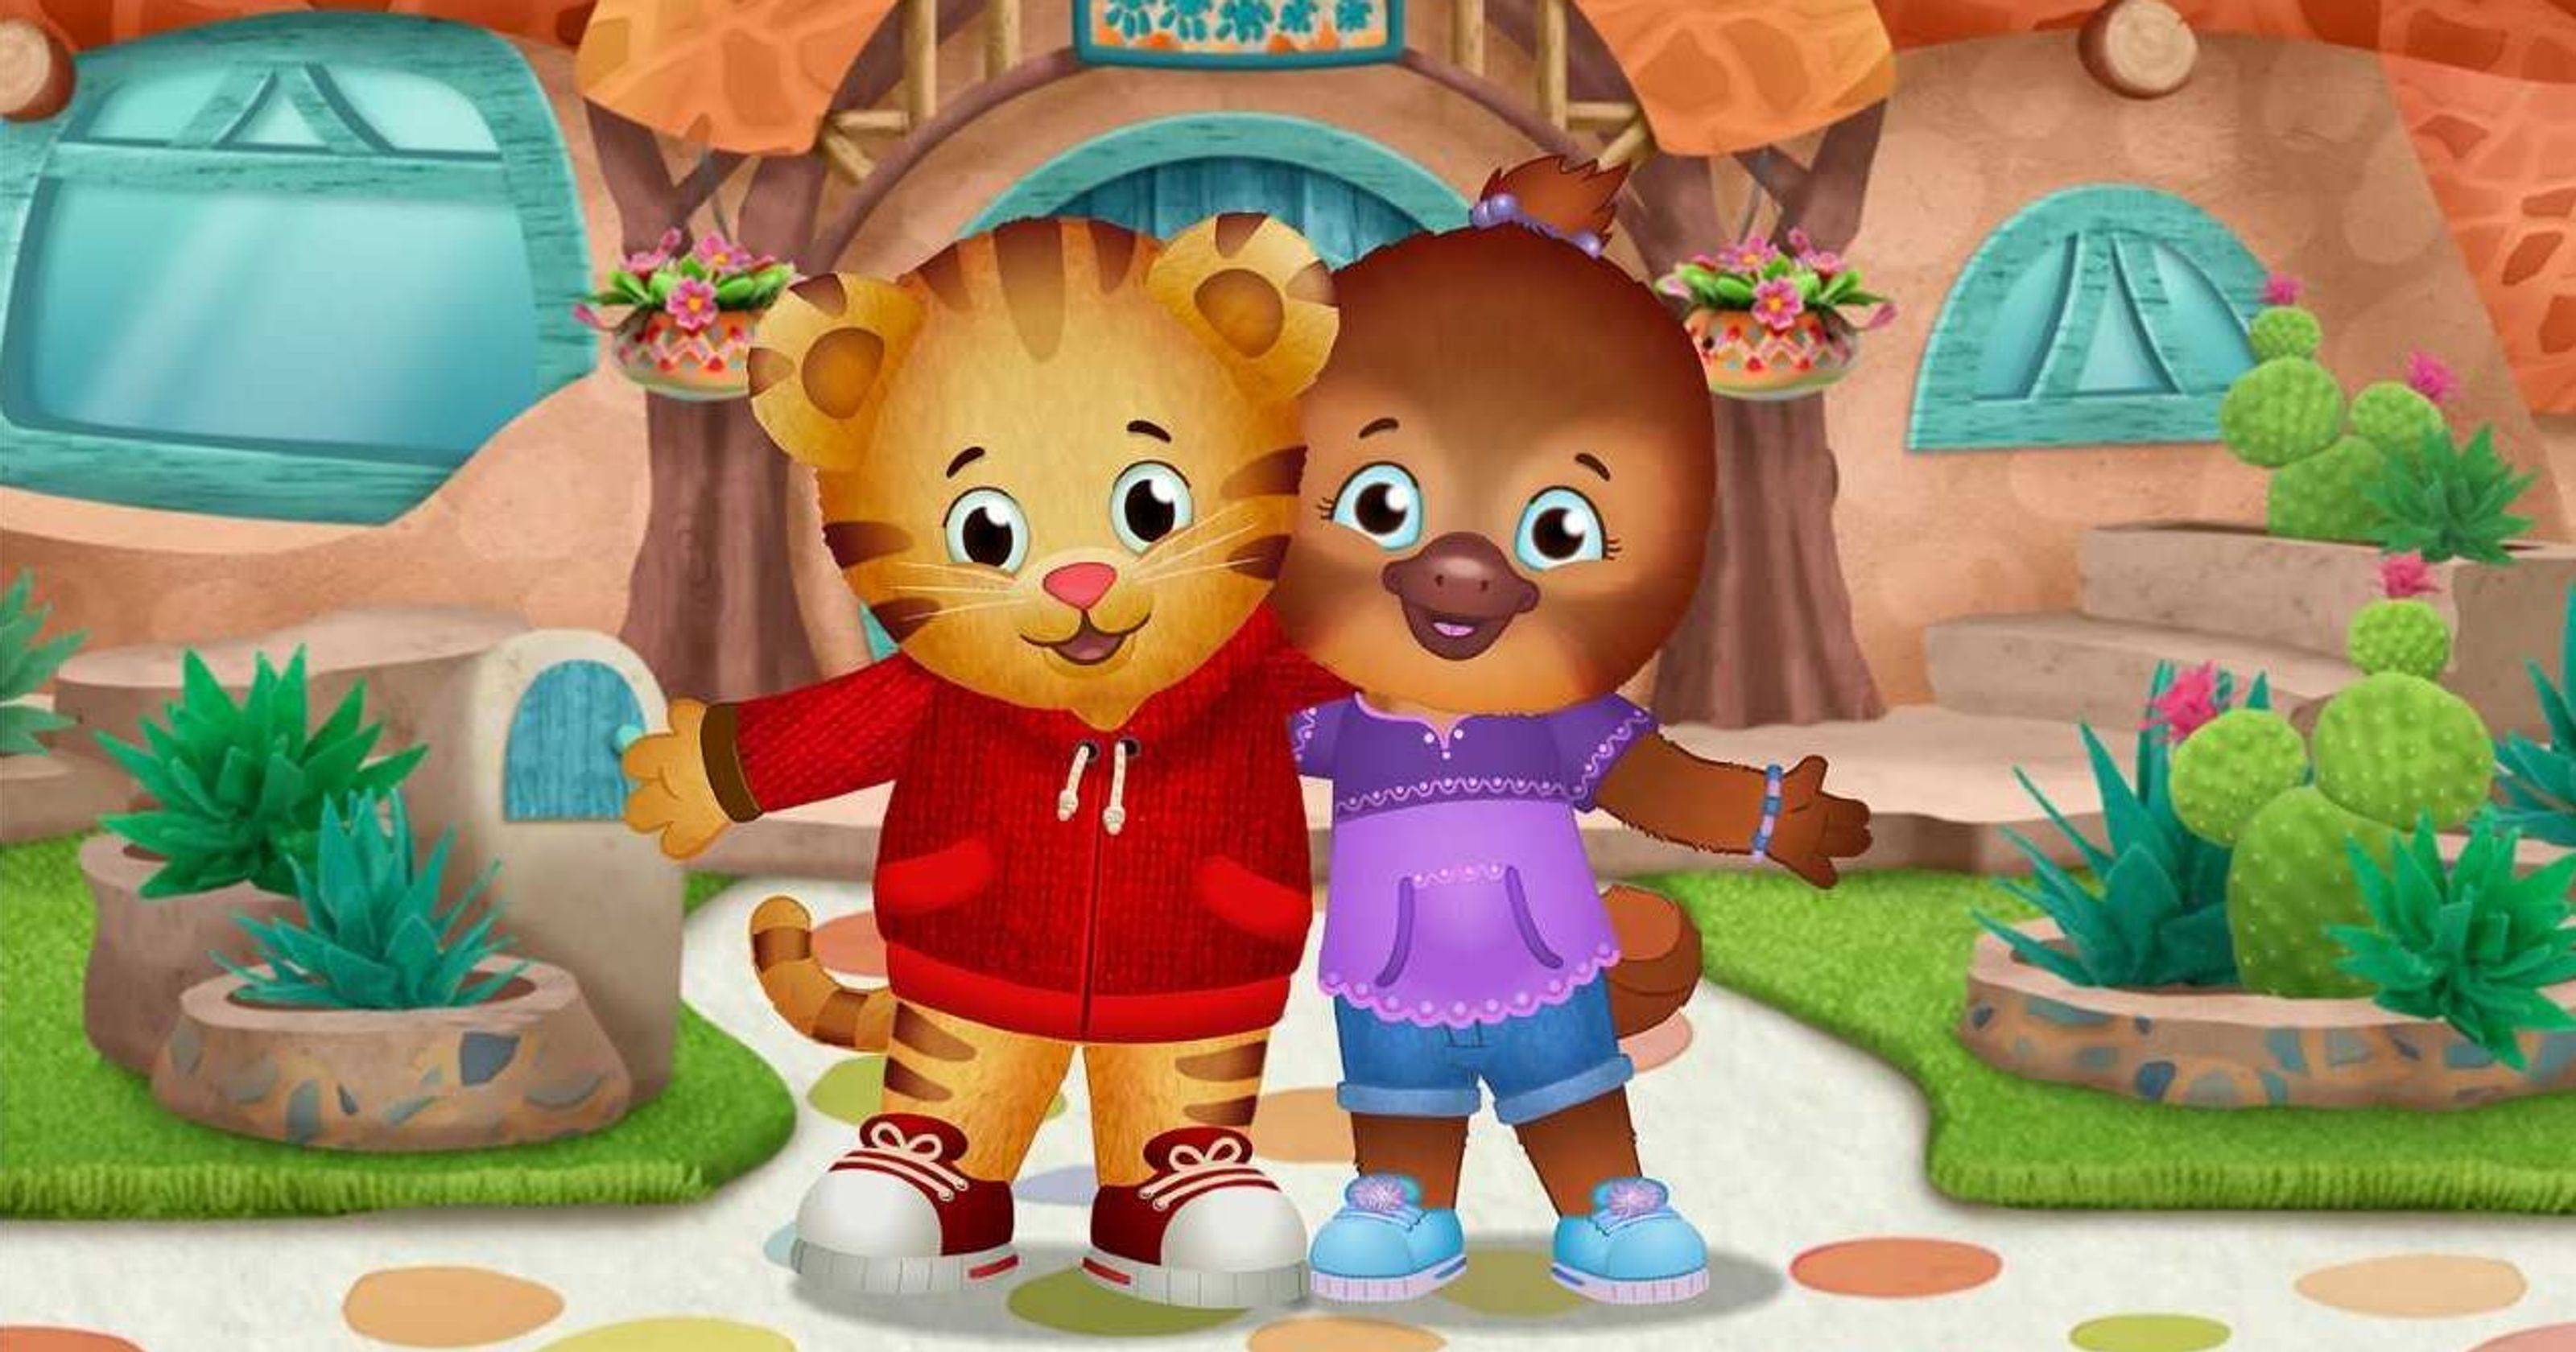 Daniel Tiger's Neighborhood: Won't You Be My Neighbor?